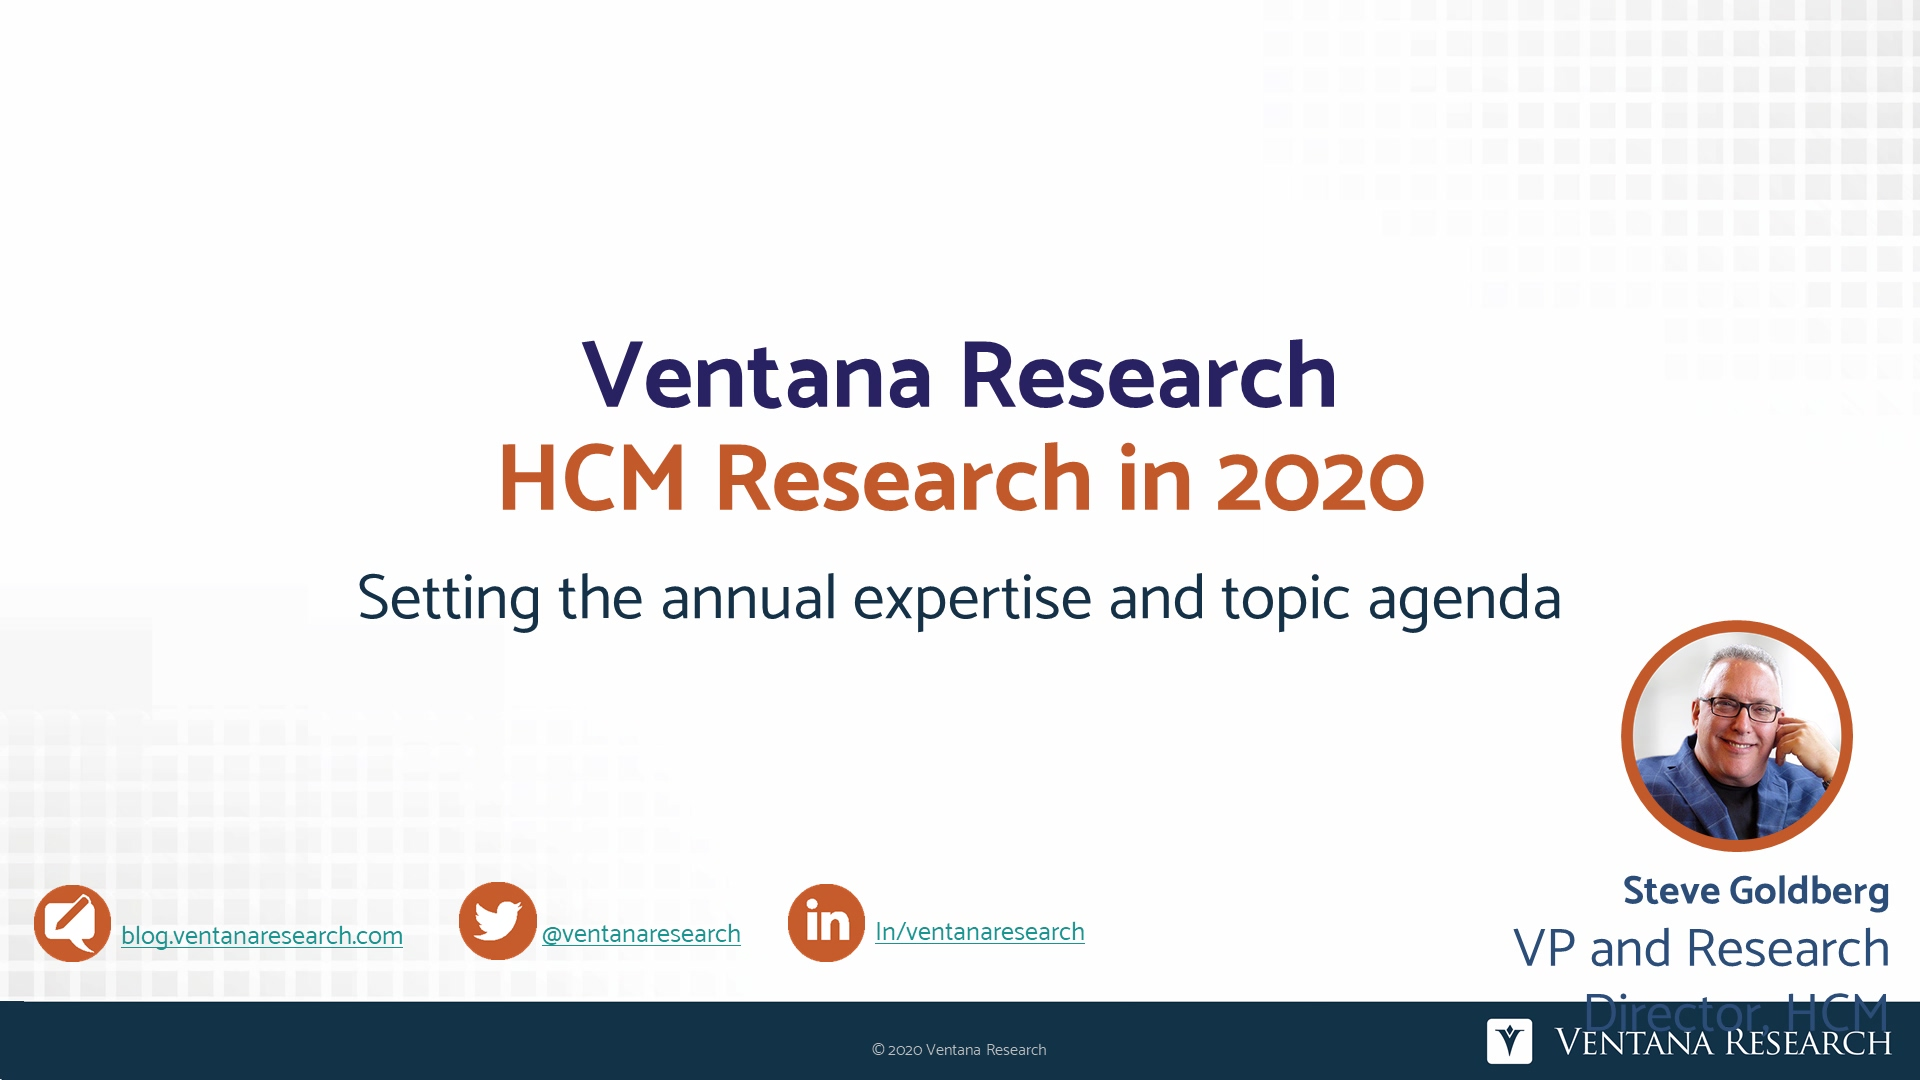 Ventana_Research_2020_Human_Capital_Management_Research_Agenda